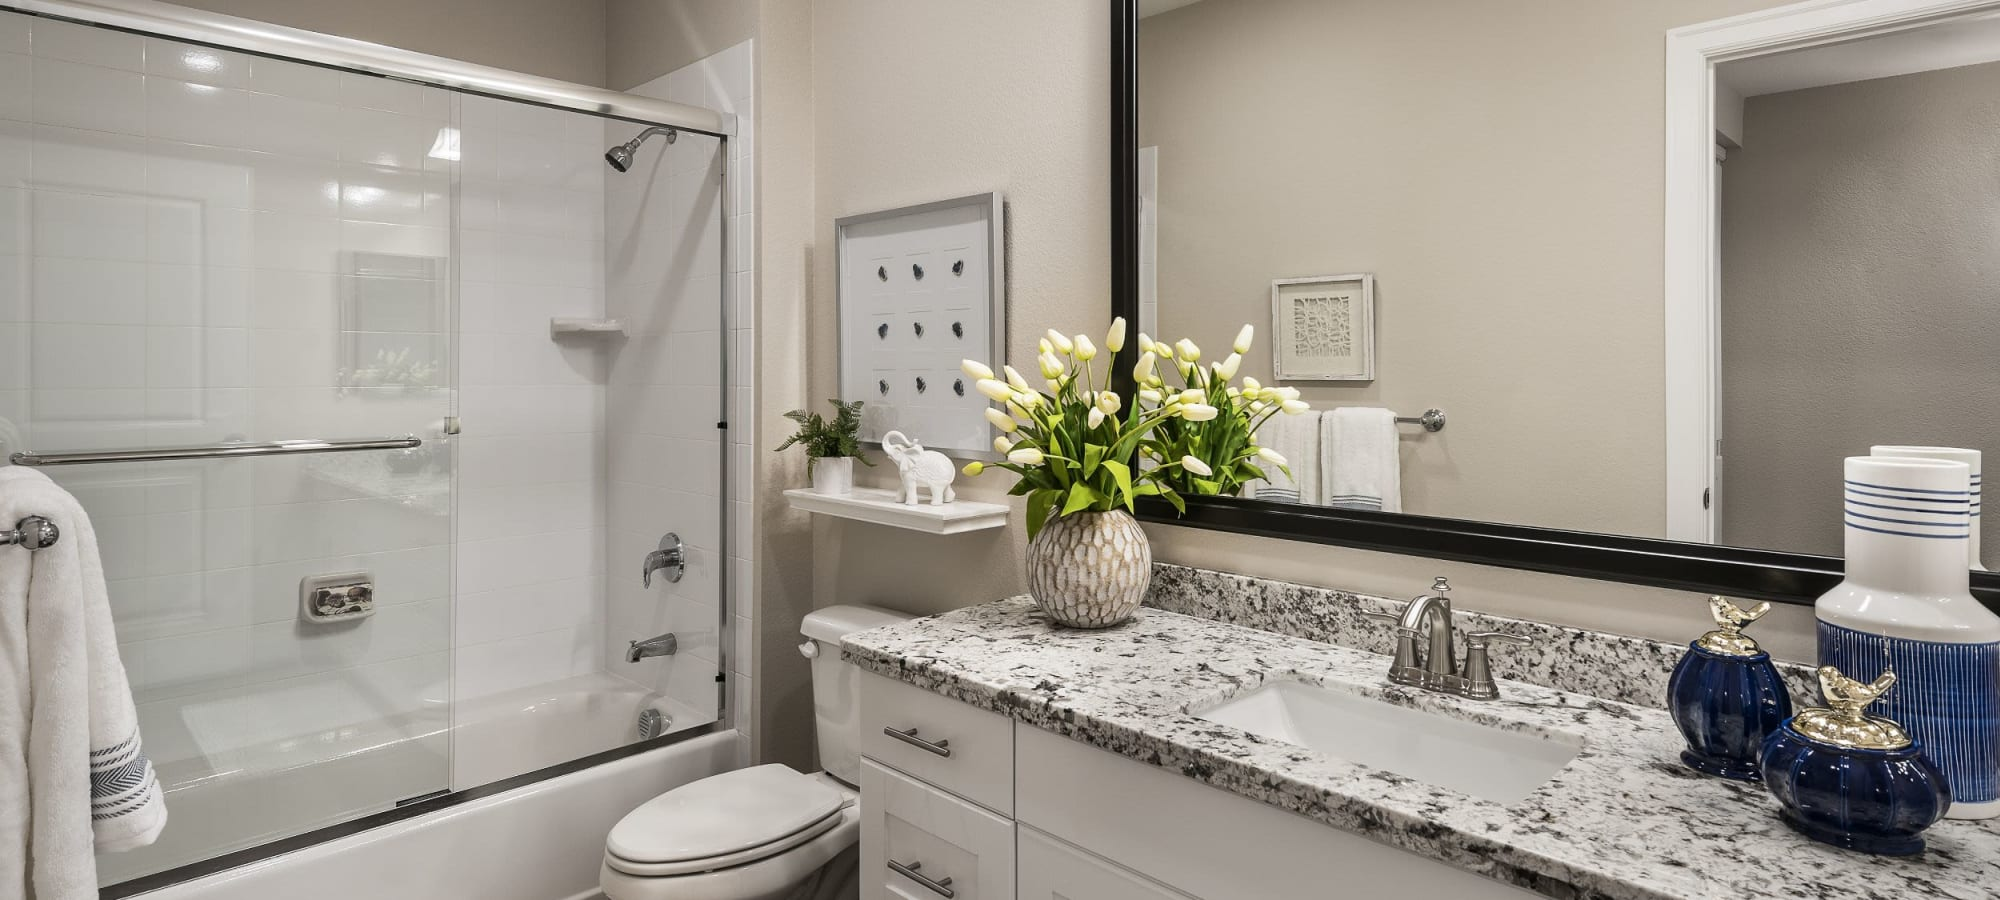 Bathroom with granite style counters at San Artes in Scottsdale, Arizona